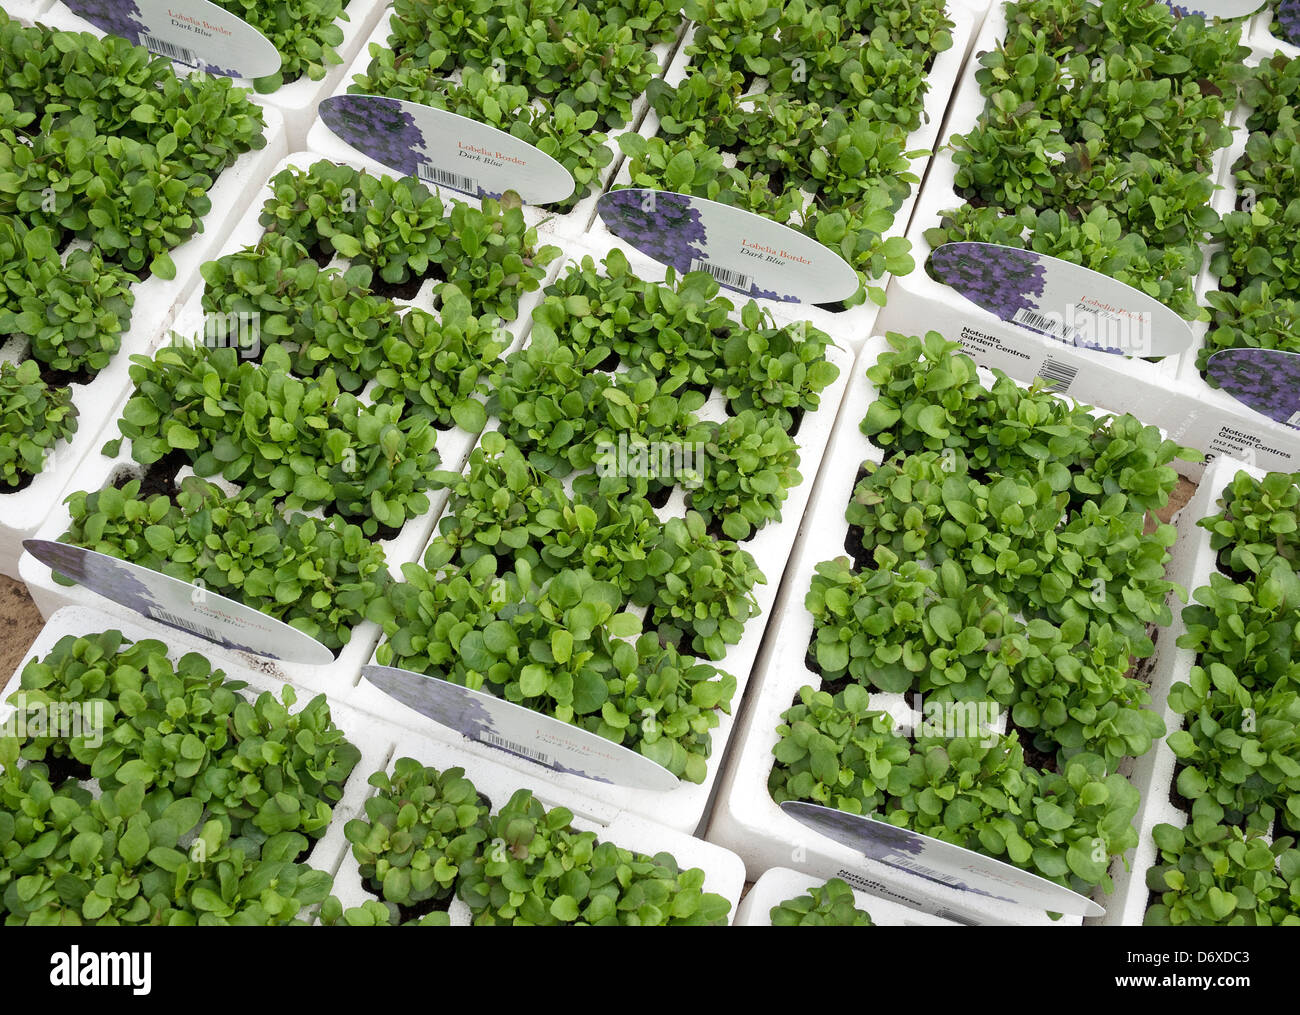 lobelia bedding plants in nursery - Stock Image